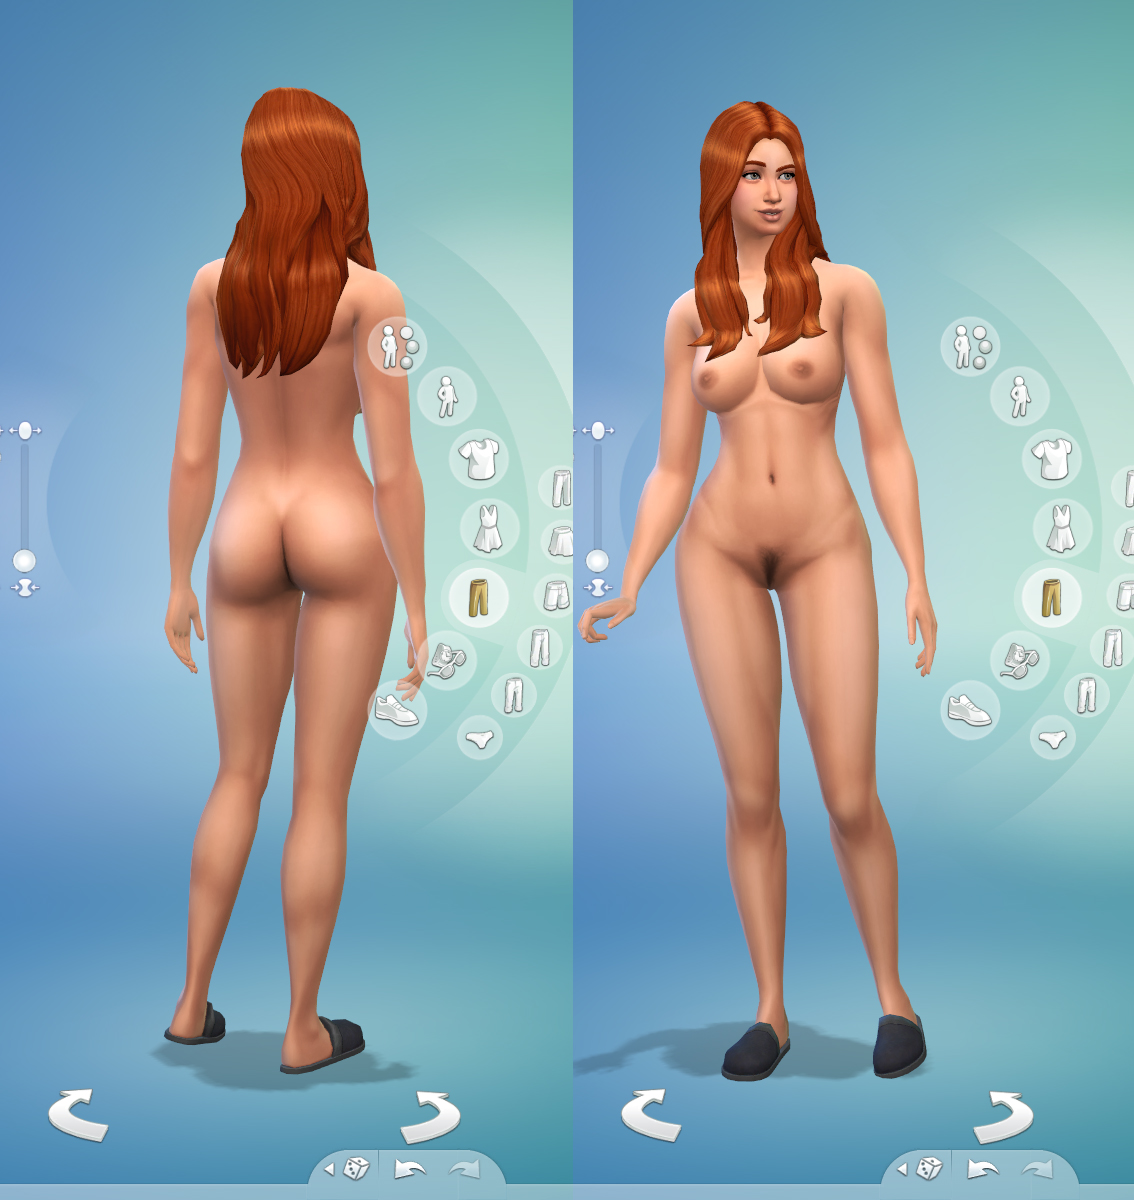 Nude sim 2 skins nudes video